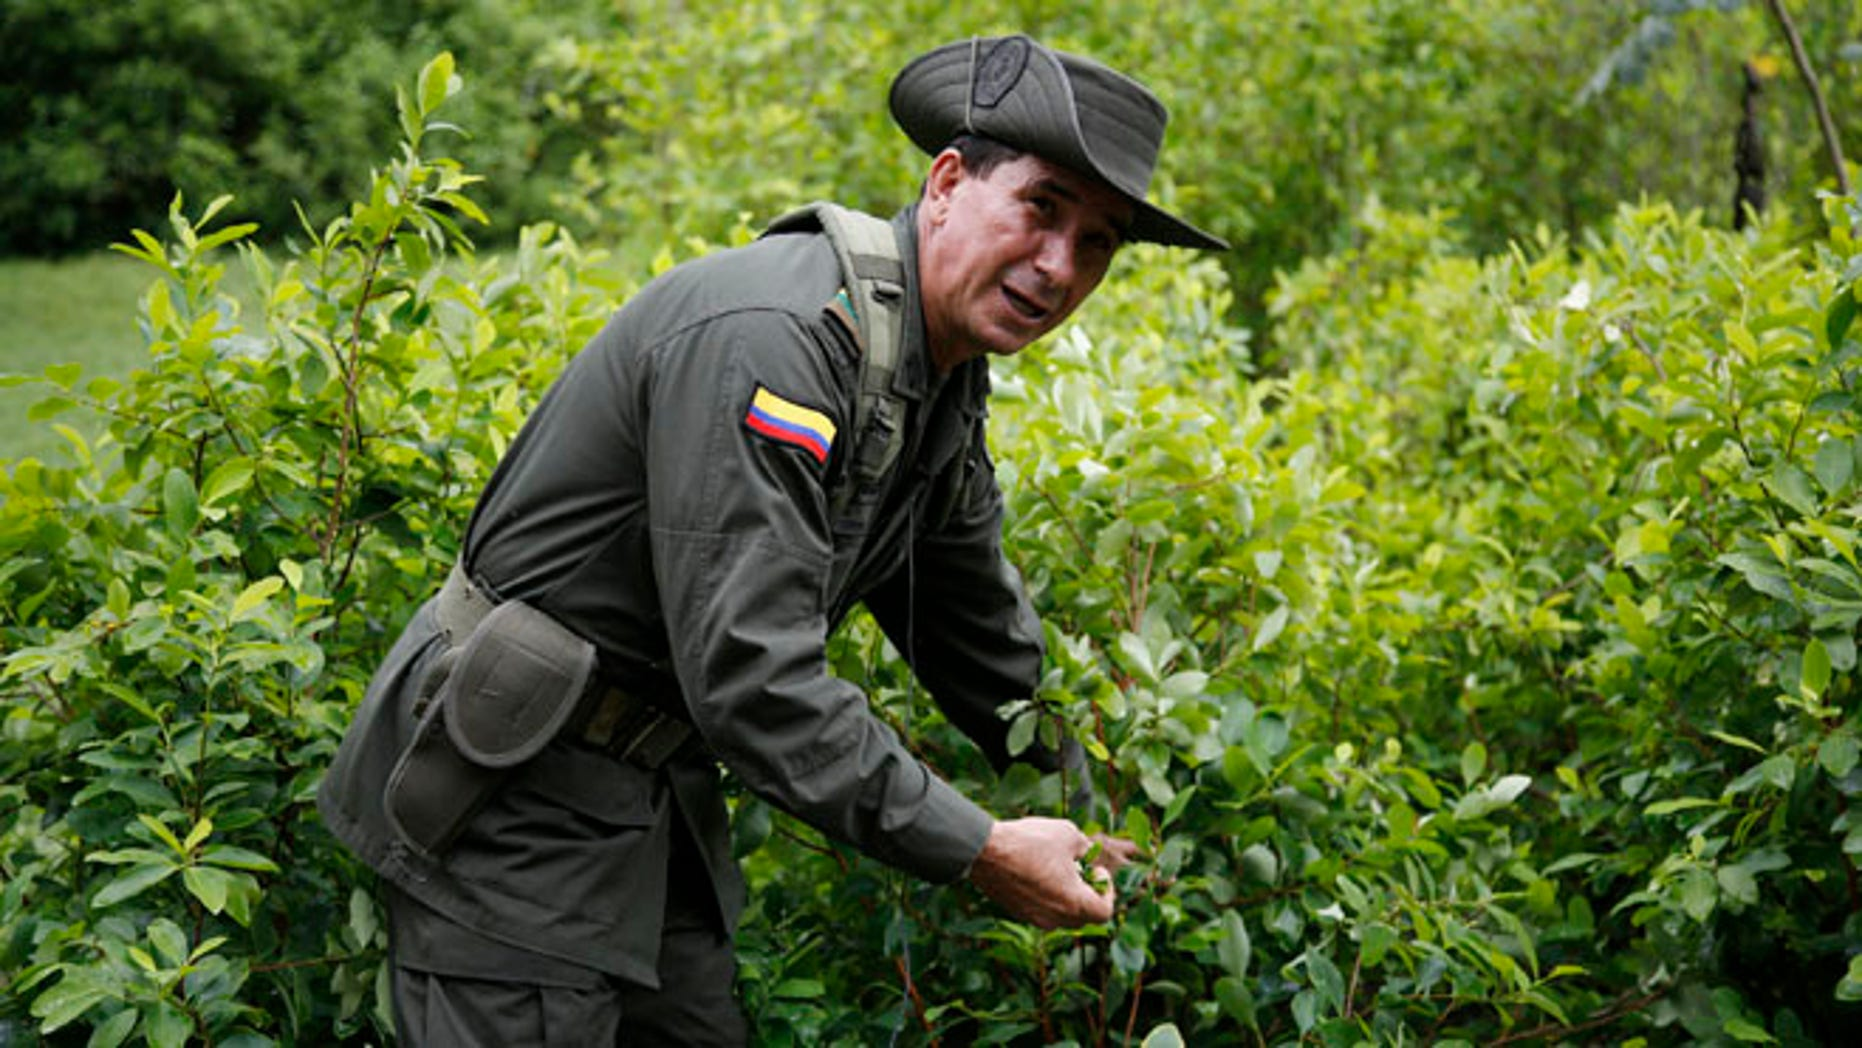 In this May 10, 2016 photo, a police officers picks coca leaves as he gives a tour of an experimental coca field at Los Pijaos police training base in San Luis, Colombia, where procedures and equipment are tested against coca growersââ¬â¢ ever-changing techniques. In the coming months, Colombia will quadruple to around 200 the number of eradication crews, each comprised of about two dozen civilians escorted by a much-larger security detail of sharpshooters, paramedics and land mine removal teams. After six straight years of declining or steady production, the amount of land under coca cultivation in Colombia began rising in 2014 and jumped 42 percent last year, according to the U.S. government.  (AP Photo/Fernando Vergara)